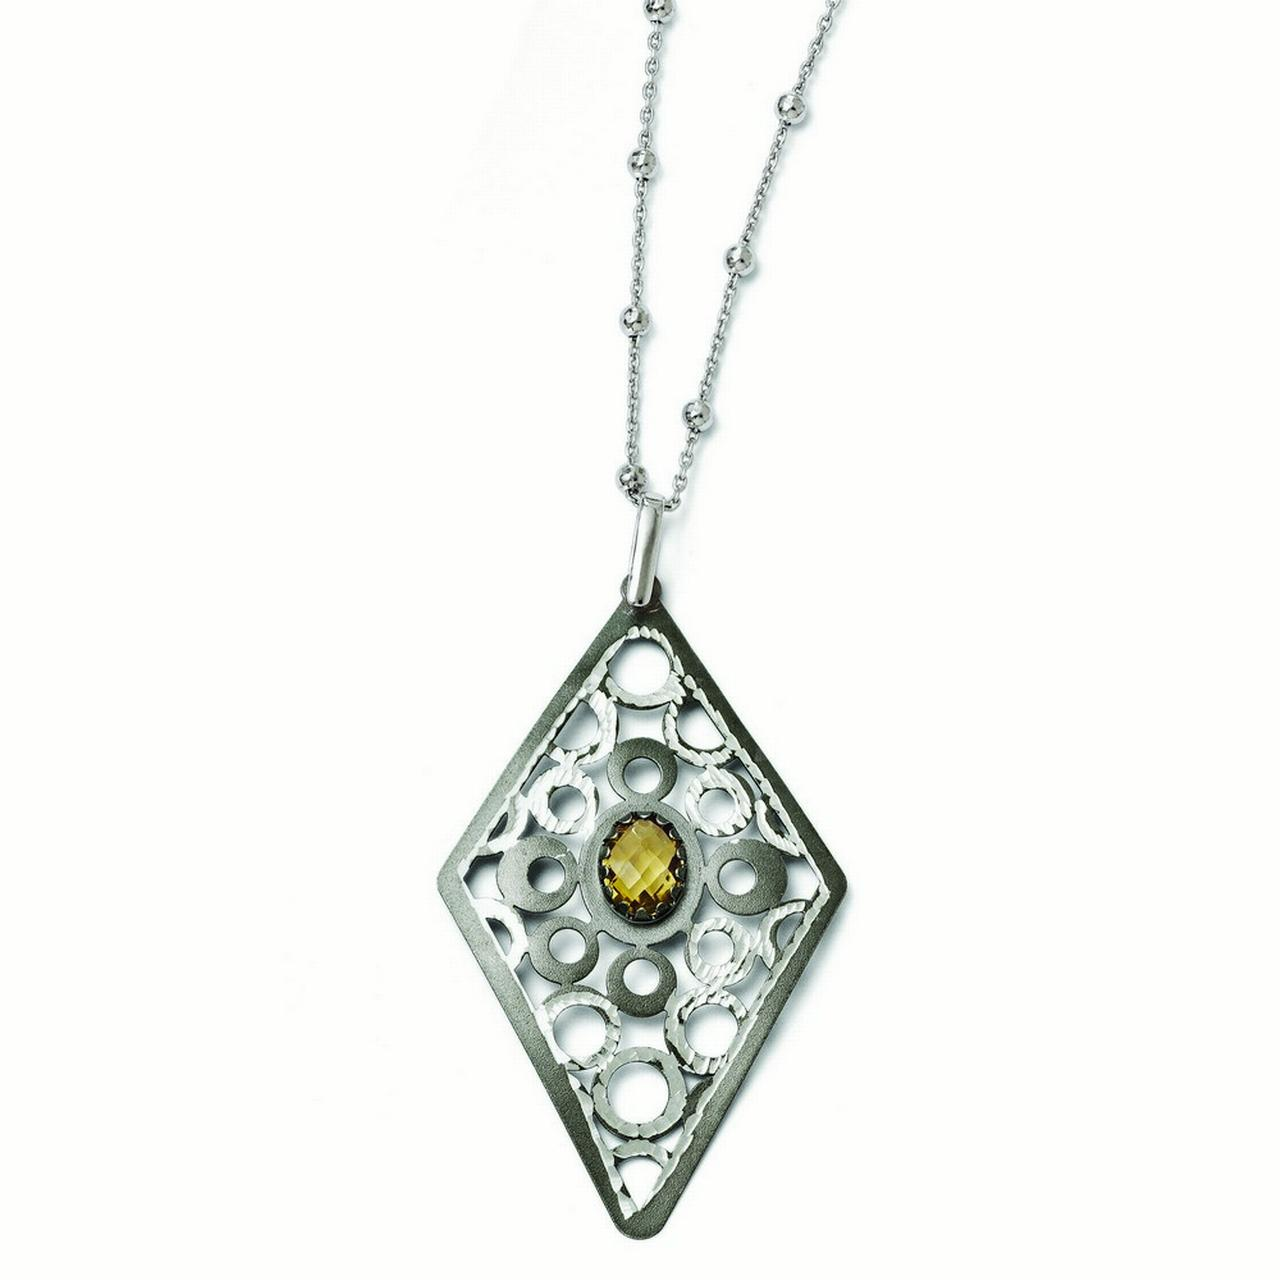 Sterling Silver and Ruthenium Citrine Necklace With 2inch Ext. by